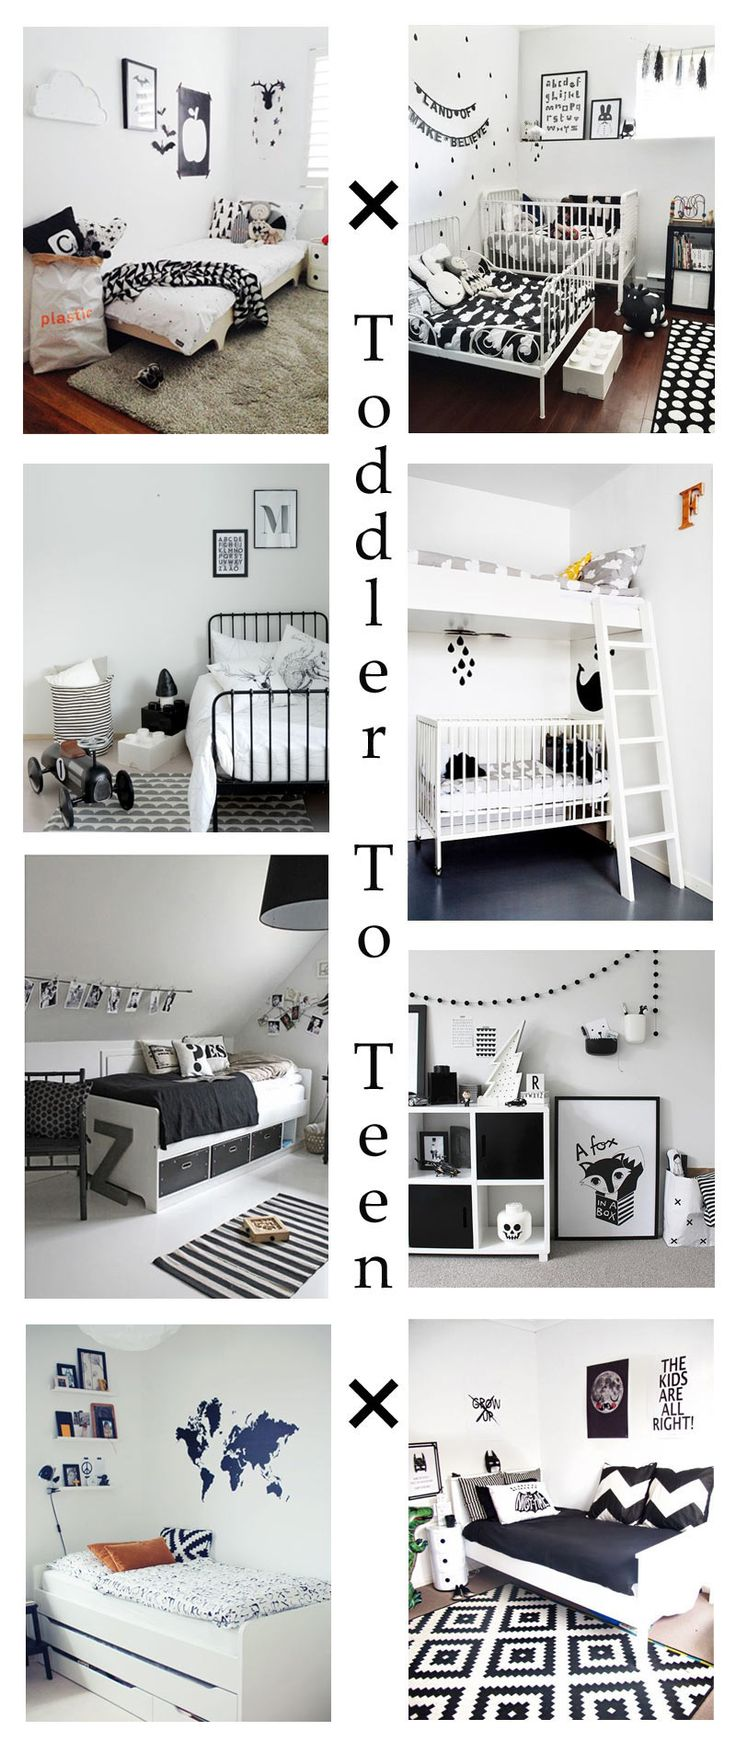 The Only Girl in the House blog compiles her favourite inpsiration for a monochrome kids bedroom and nursery. Black and white nursery, bedroom, boys room. interior design ideas for children and family